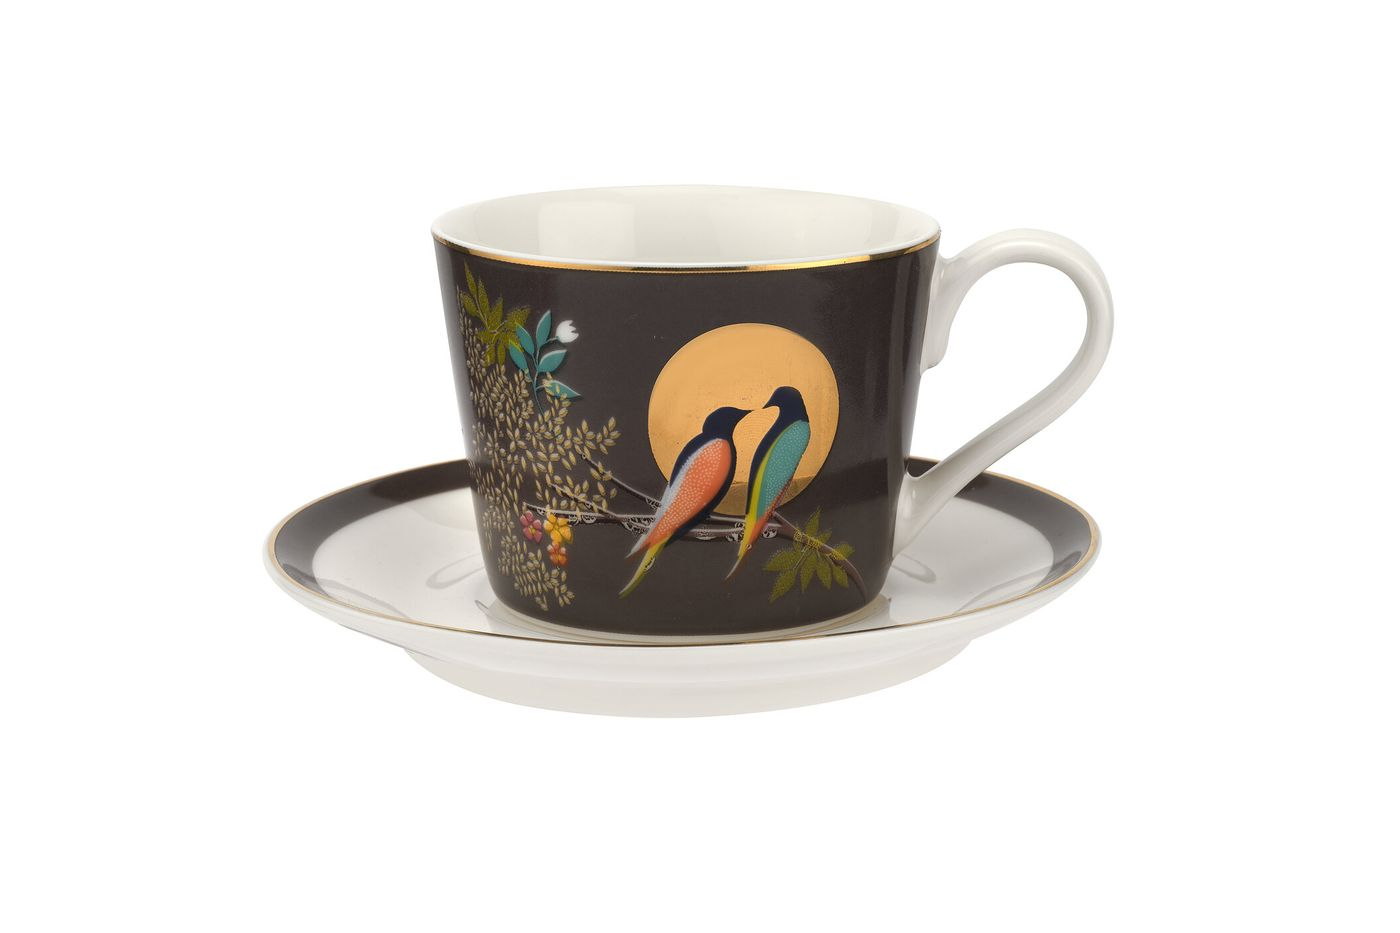 Sara Miller London for Portmeirion Chelsea Collection Espresso Cup & Saucer - Set of 4 0.11l thumb 2